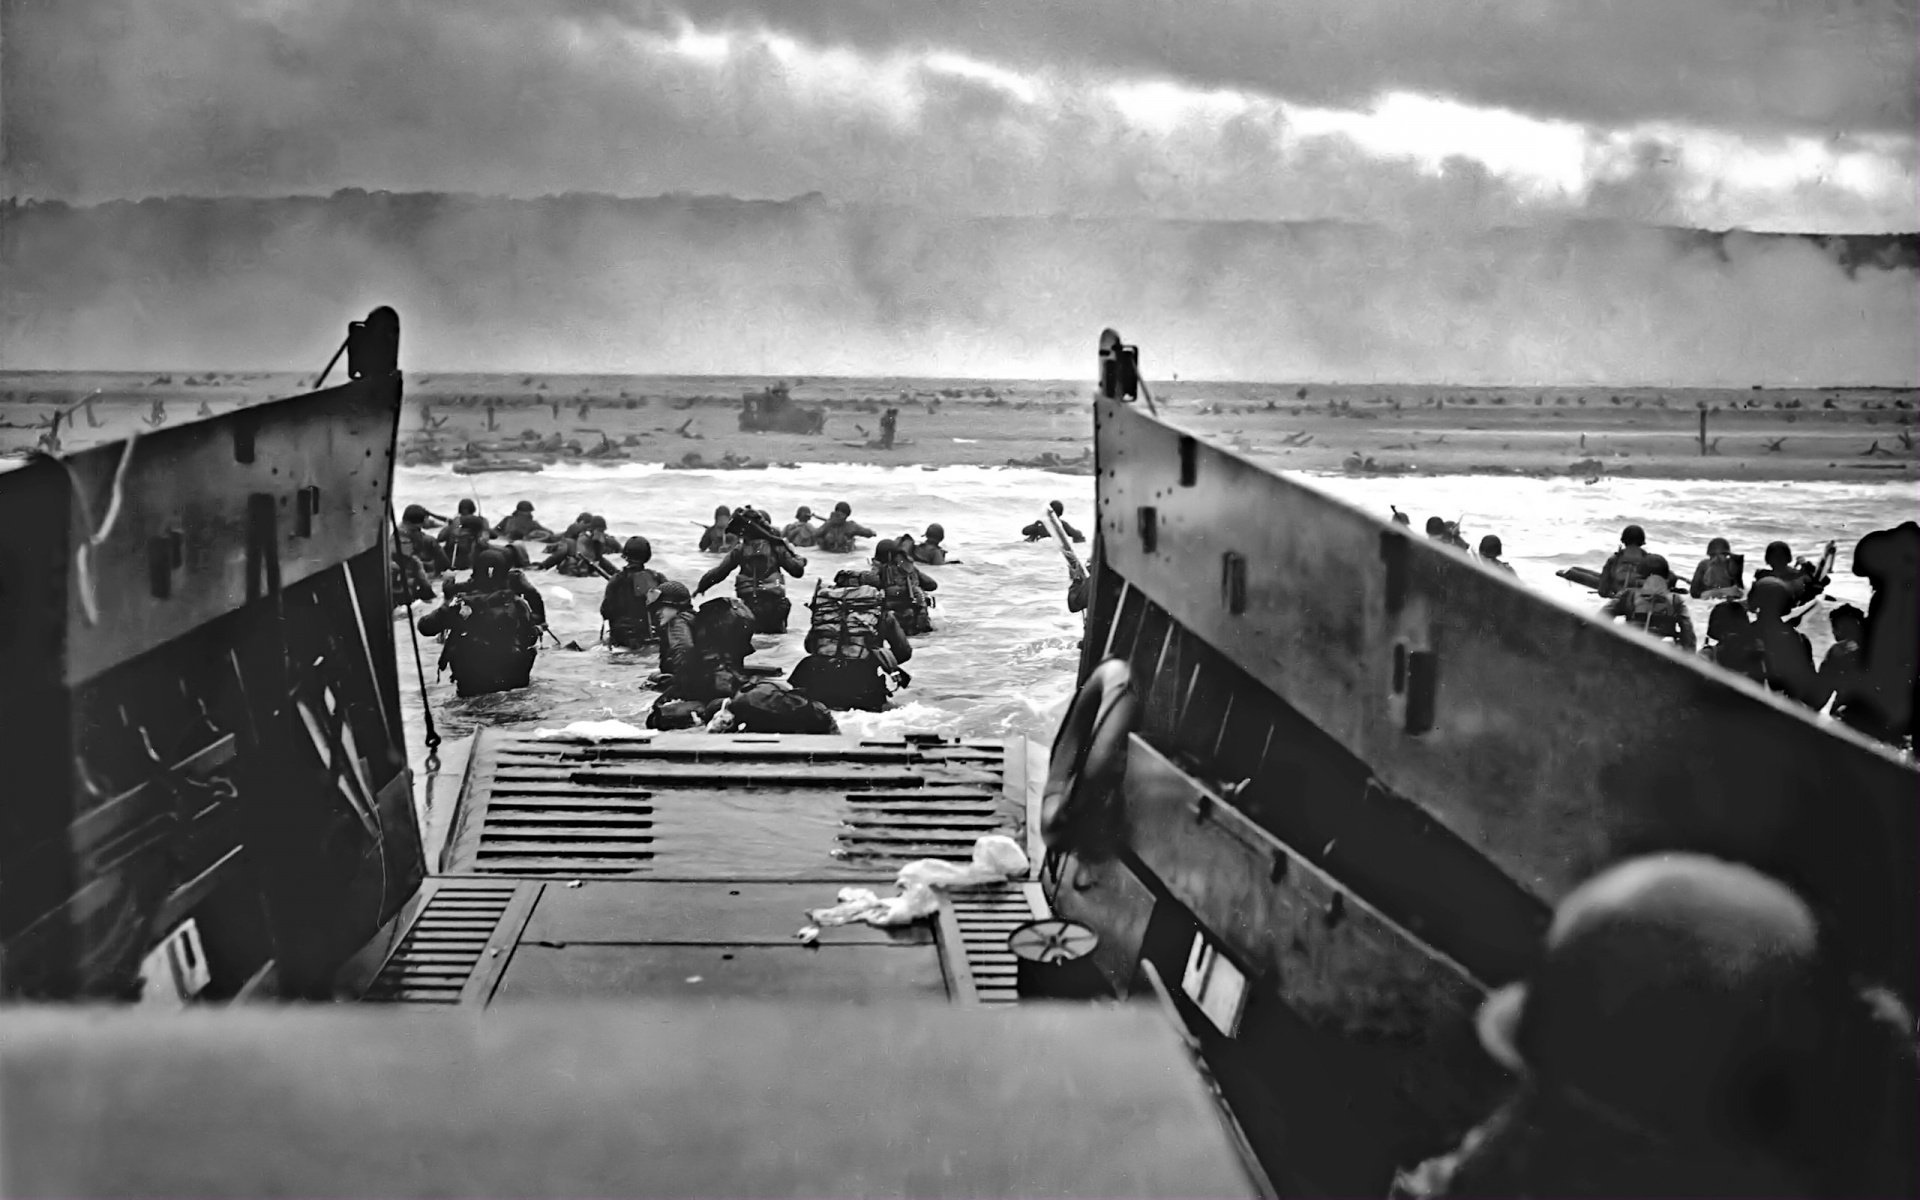 D Day HD Wallpaper Background Image 1920x1200 ID574277 1920x1200